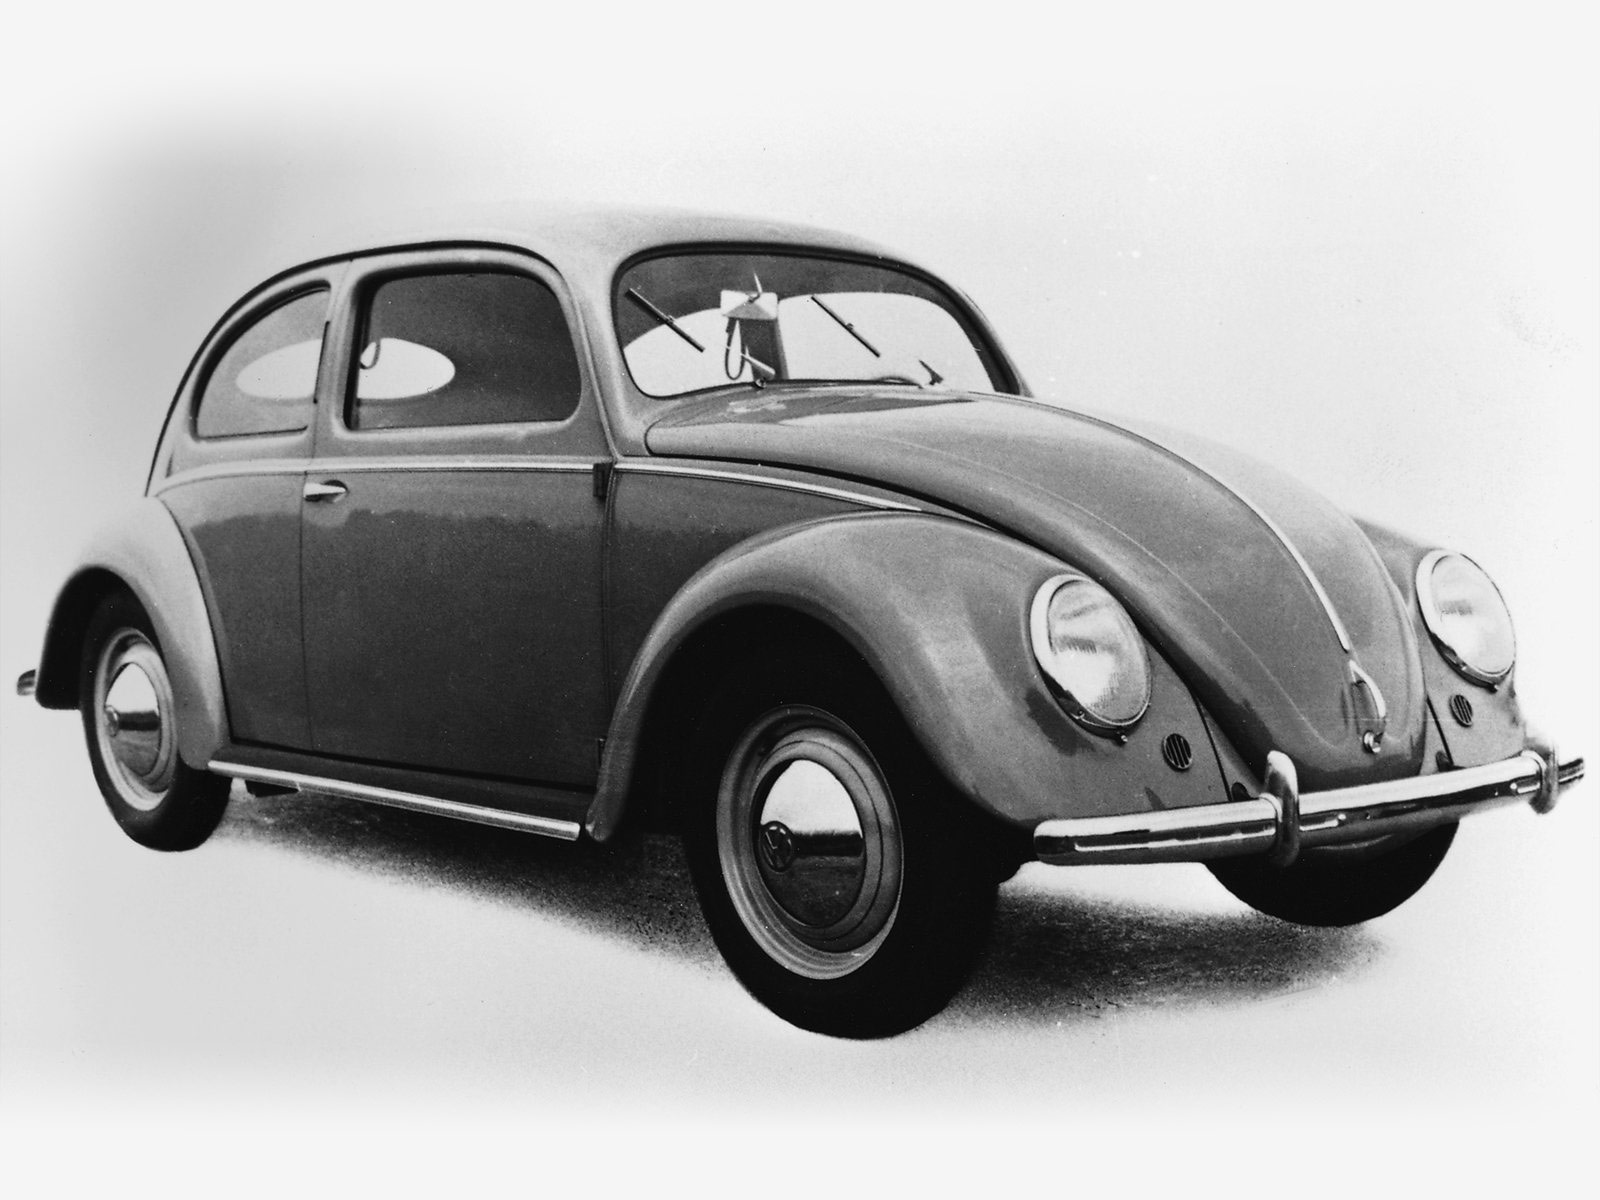 1938 Vw Beetle  Volkswagen Car Desktop Wallpaper